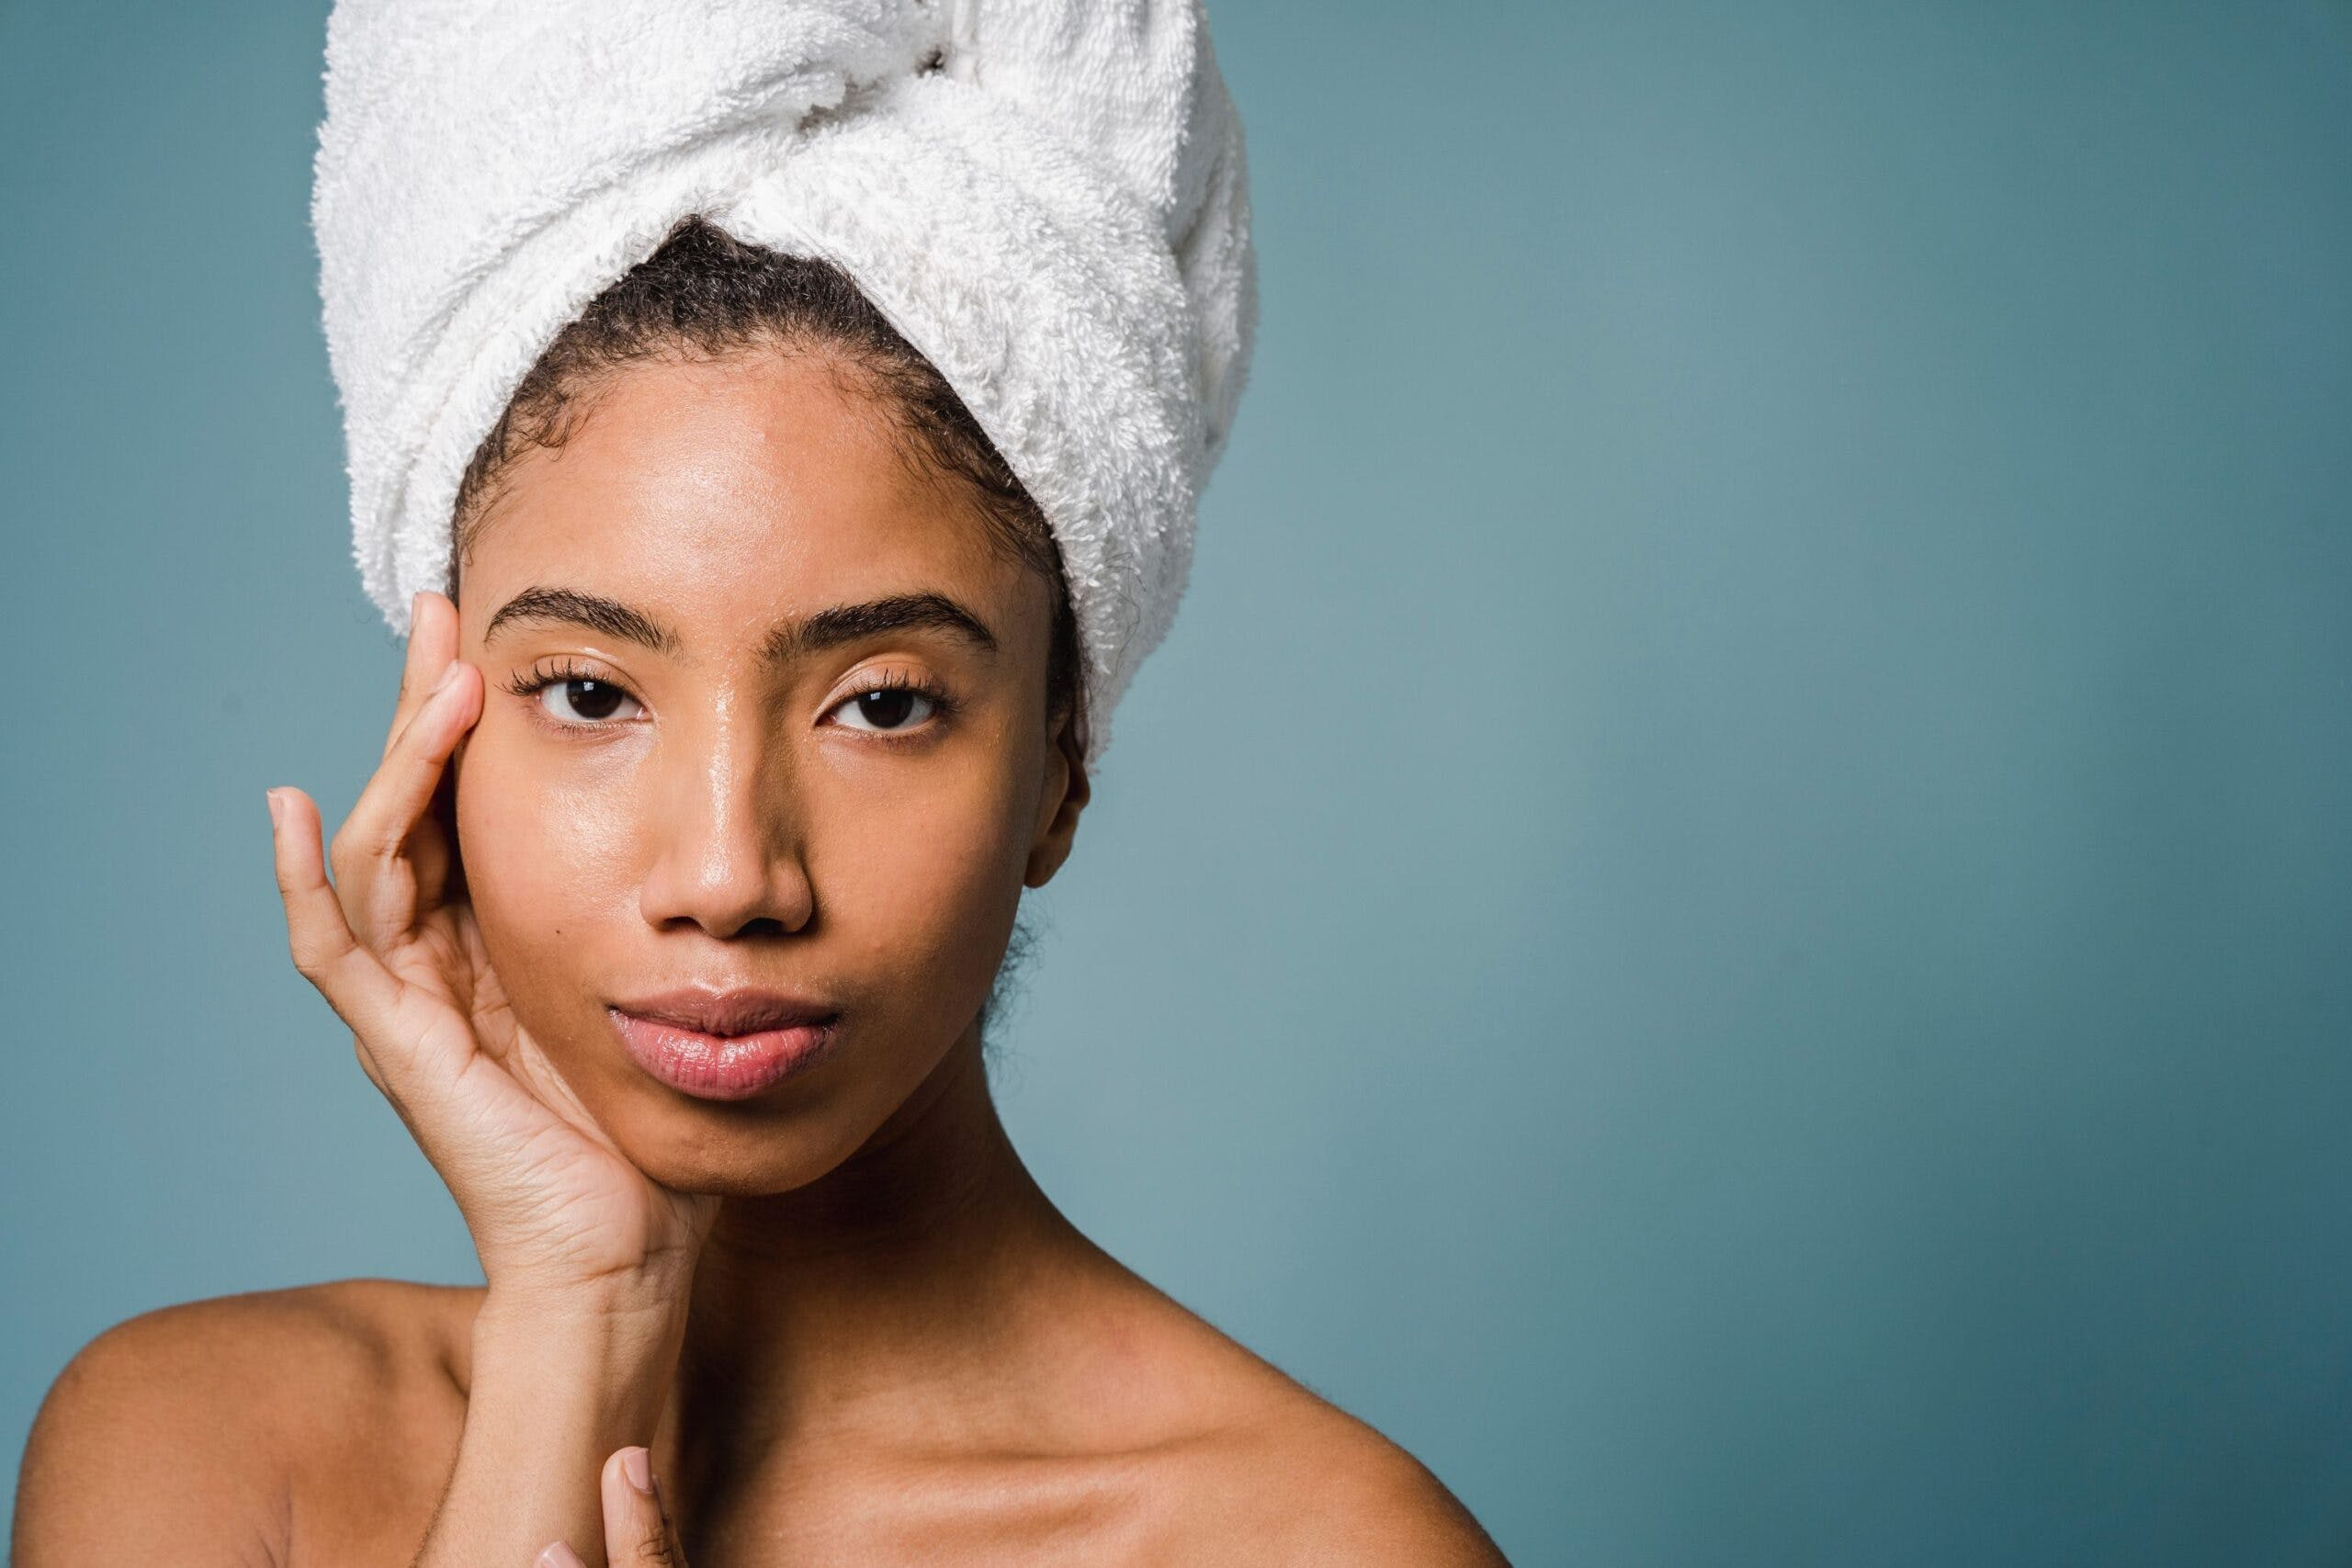 Woman with hydrated skin